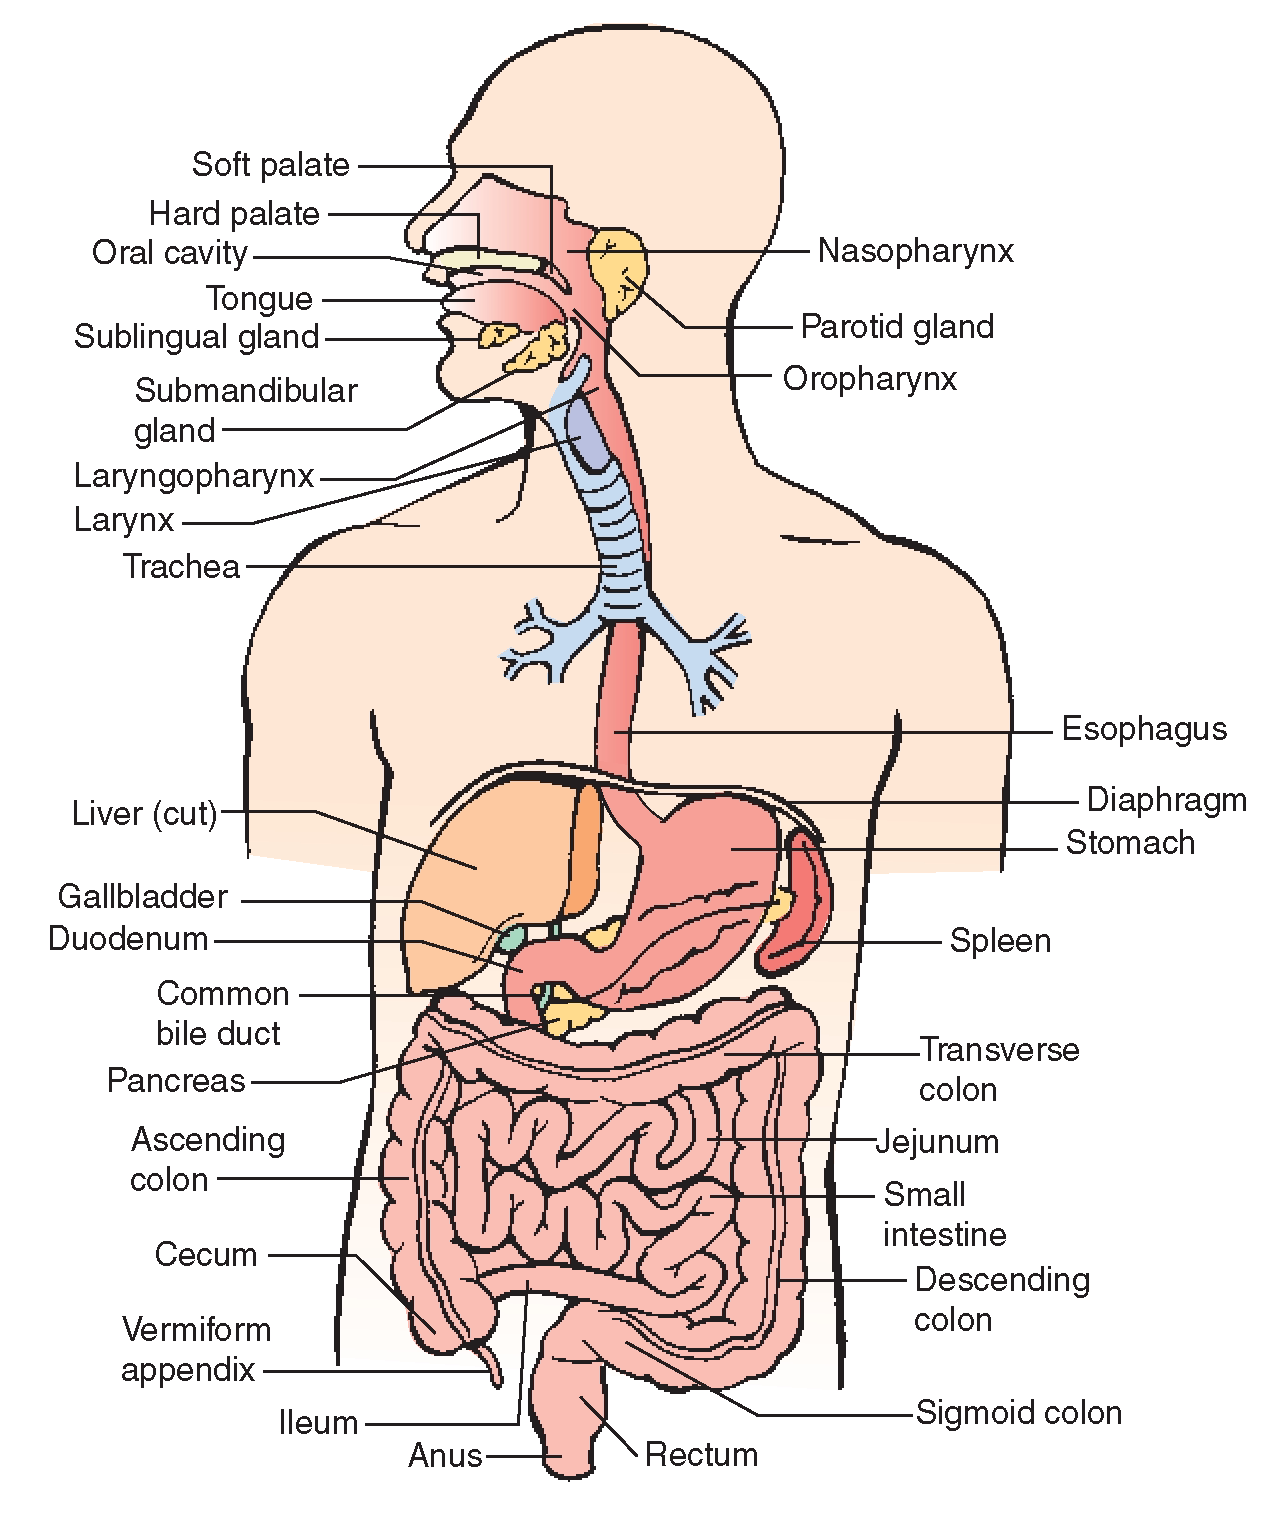 medium resolution of a picture labeling all the parts in the digestive system